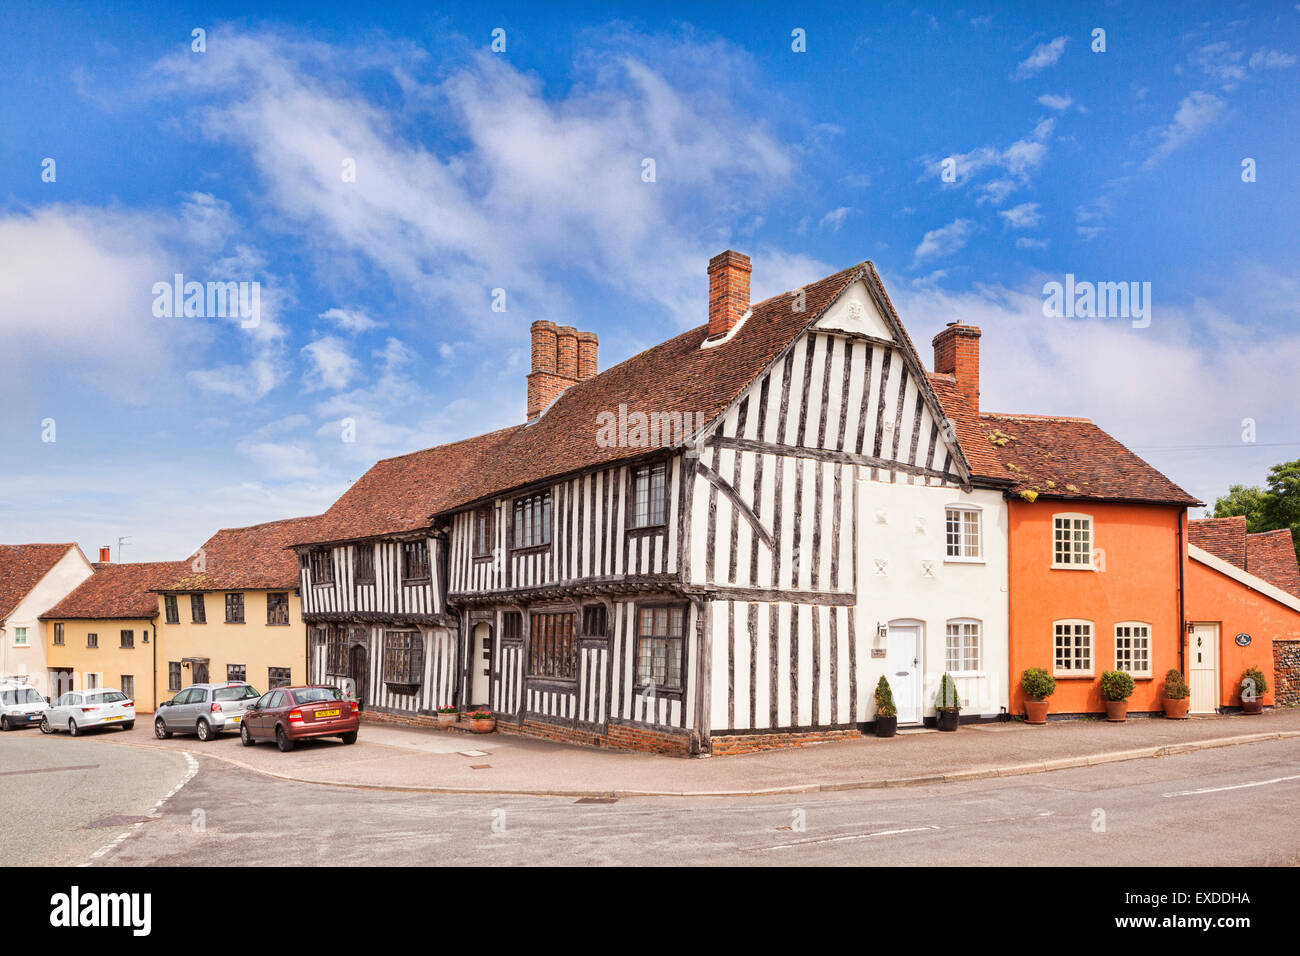 Medieval and half timbered houses in the village of Lavenham, Suffolk, England. - Stock Image